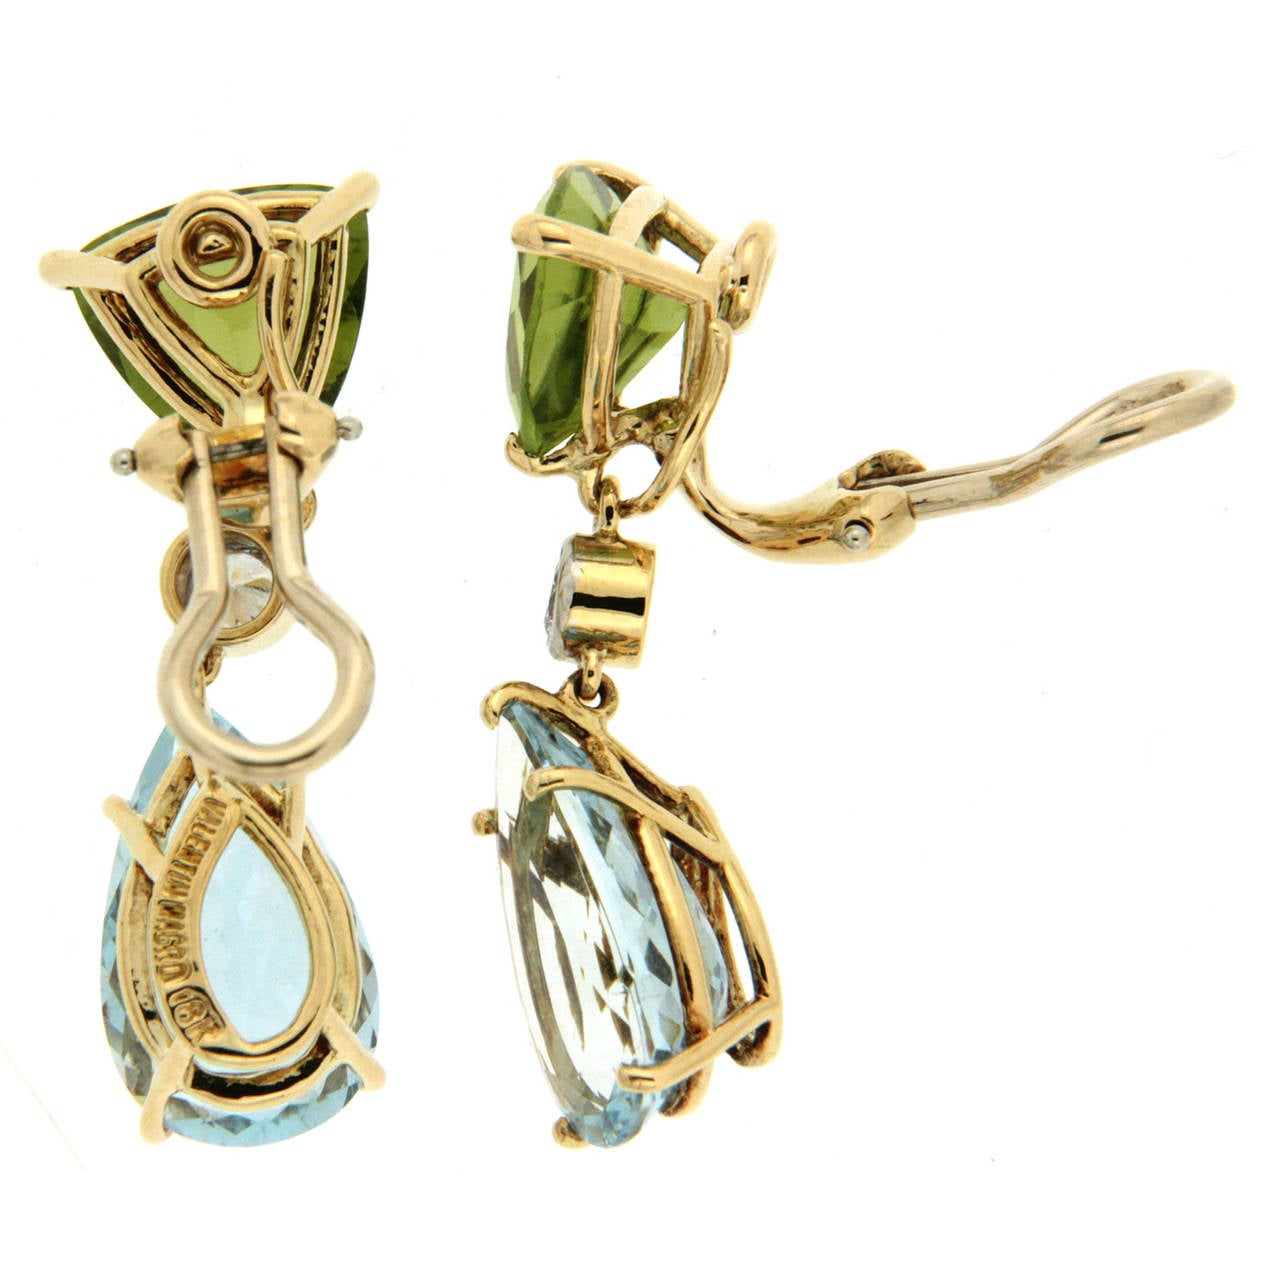 These stylish earrings are made in 18kt yellow gold, they feature trillion peridots, pear shape aquamarine drops and bezel set round brilliant diamonds (0.26ctw), they are finished with clip-backs.